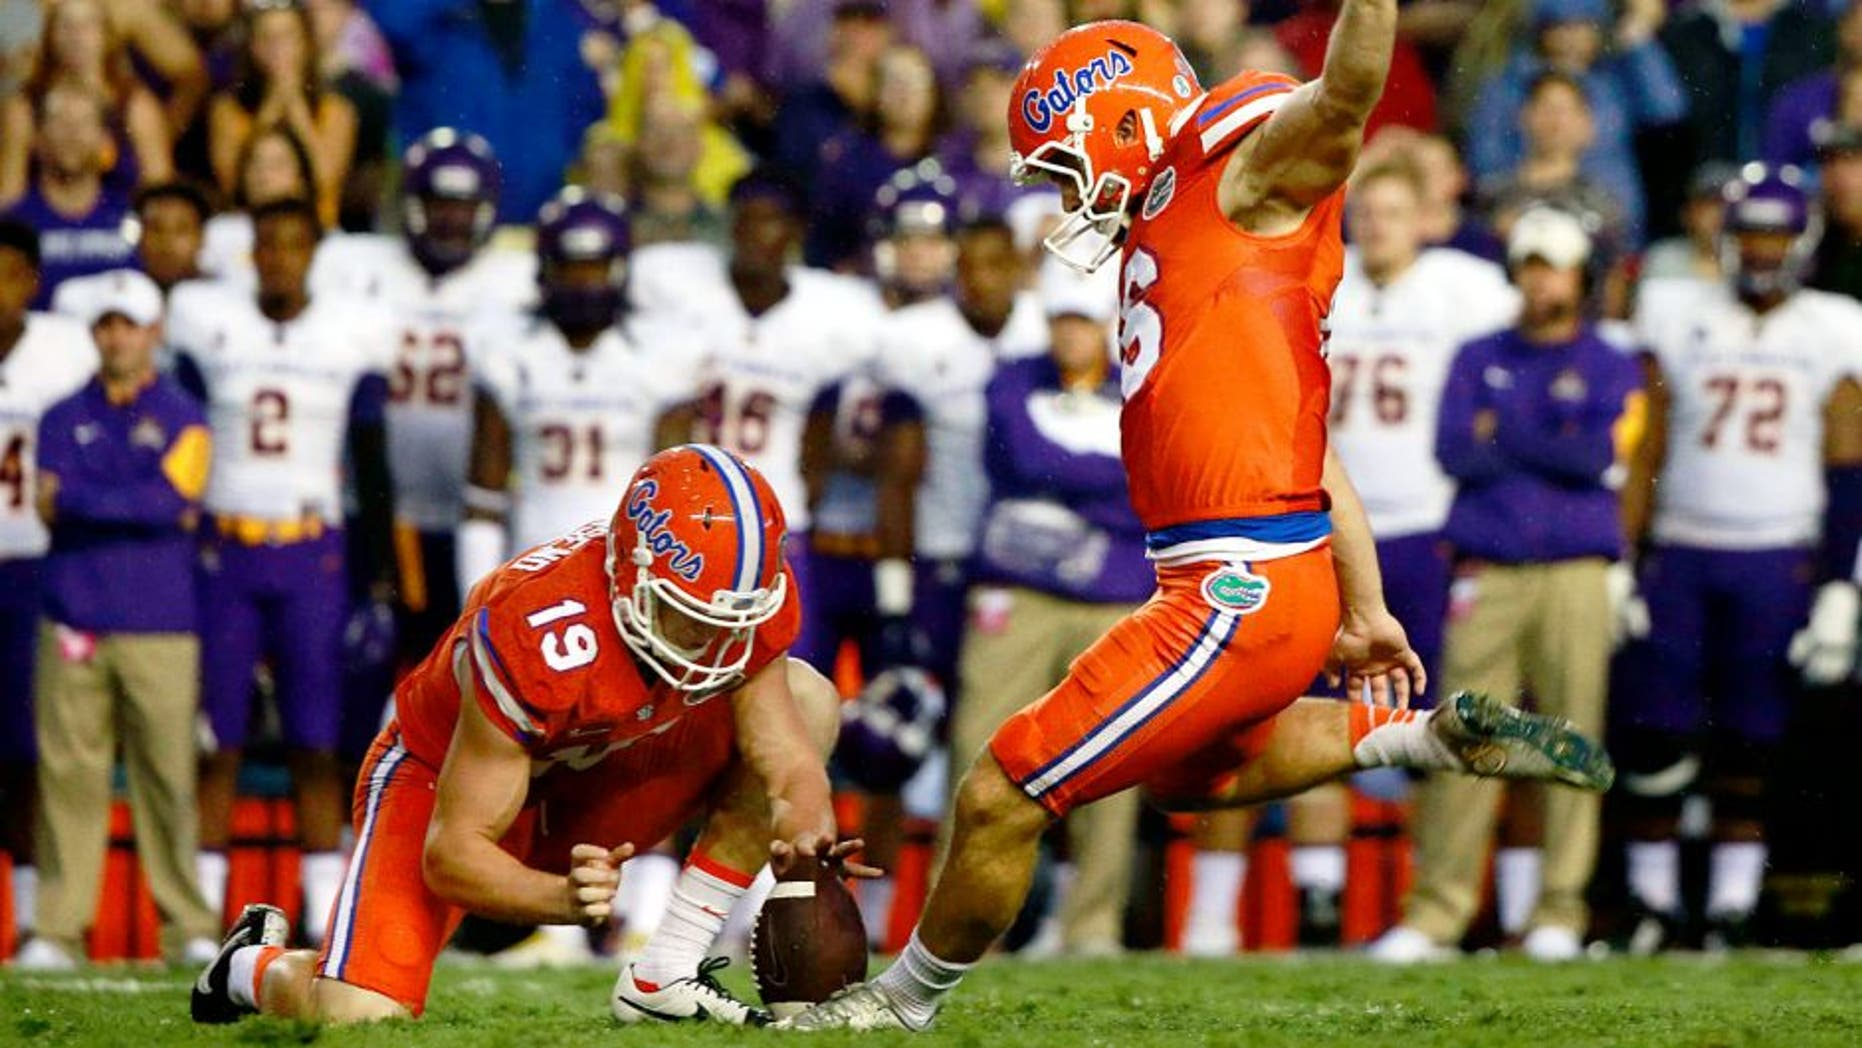 Sep 12, 2015; Gainesville, FL, USA; Florida Gators place kicker Austin Hardin (16) kicks the ball for a field goal during the first quarter against the East Carolina Pirates at Ben Hill Griffin Stadium . Mandatory Credit: Kim Klement-USA TODAY Sports